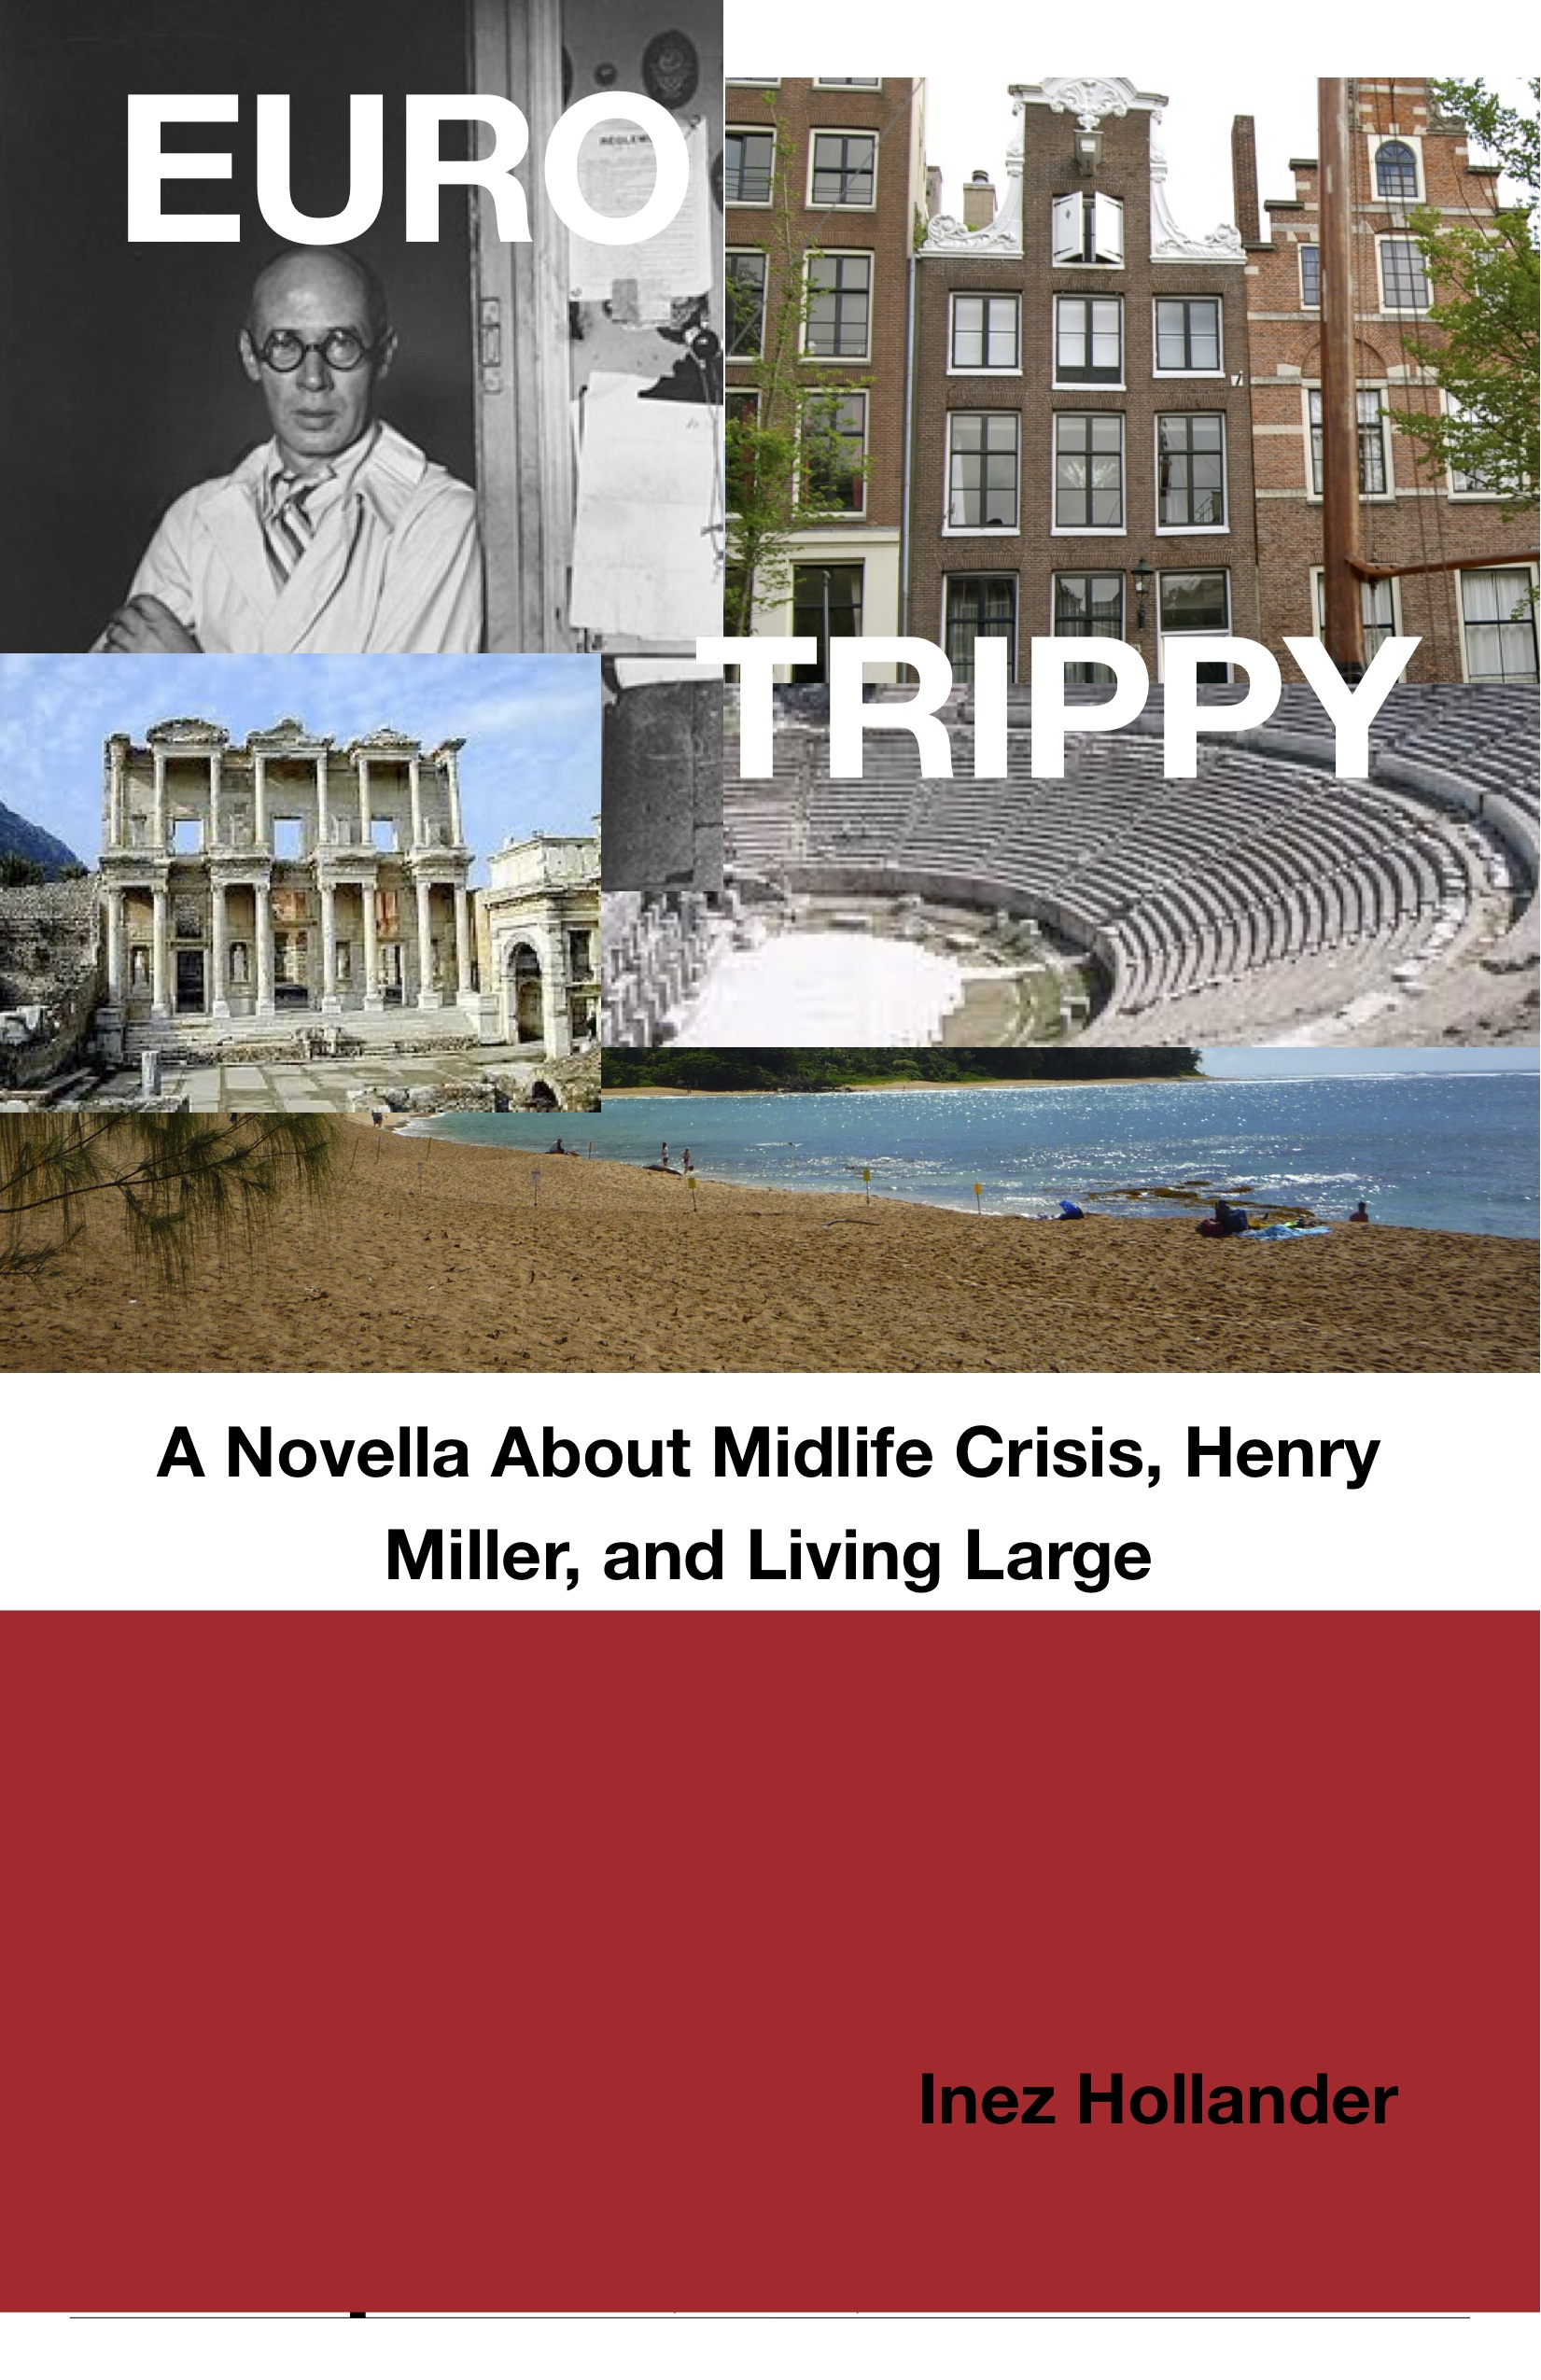 Euro Trippy: A Novella about Midlife Crisis, Henry Miller, and Living Large